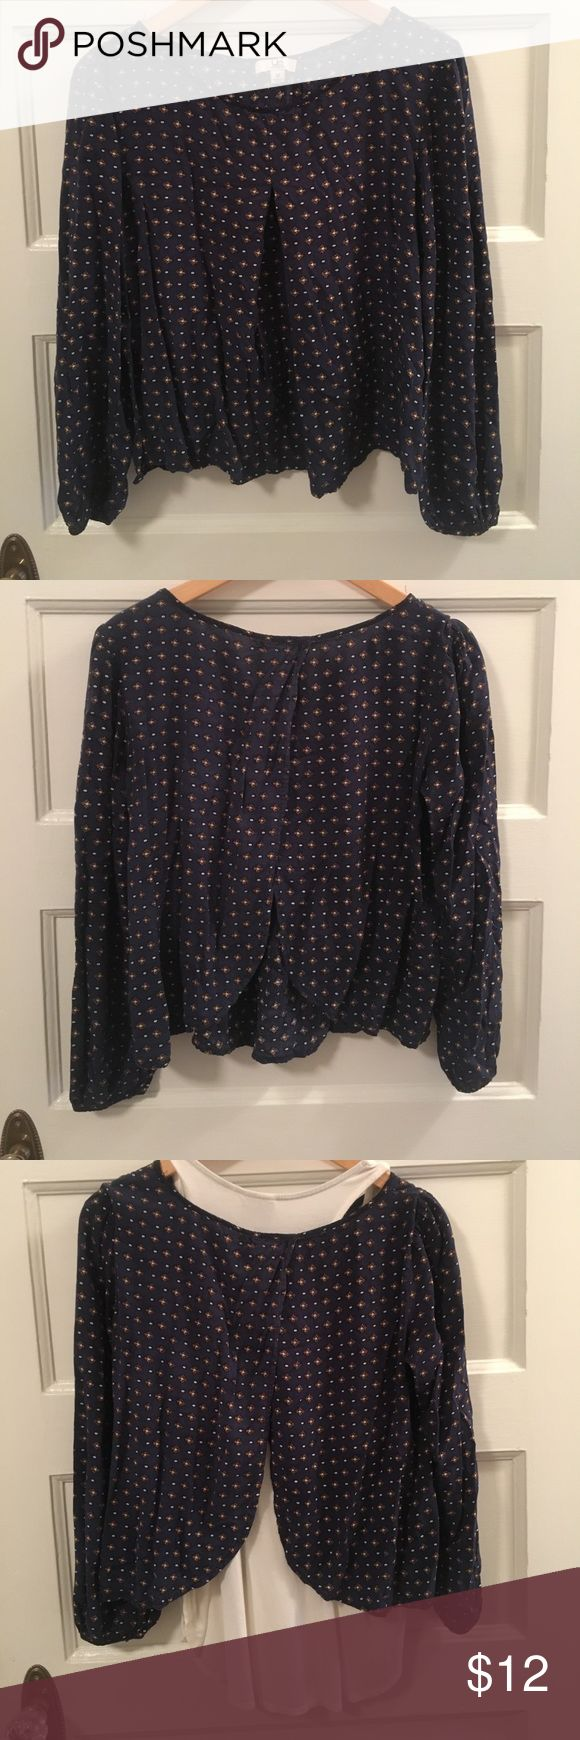 YA Los Angeles open back long sleeve tunic top YA Los Angeles open back long sleeve tunic top navy with brown and cream print. The third pic shows how I've worn it with a cream colored tank underneath (tank not for sale). Long sleeves and meant to be flowy. Bundle for savings and make me an offer! Ya Los Angeles Tops Tunics